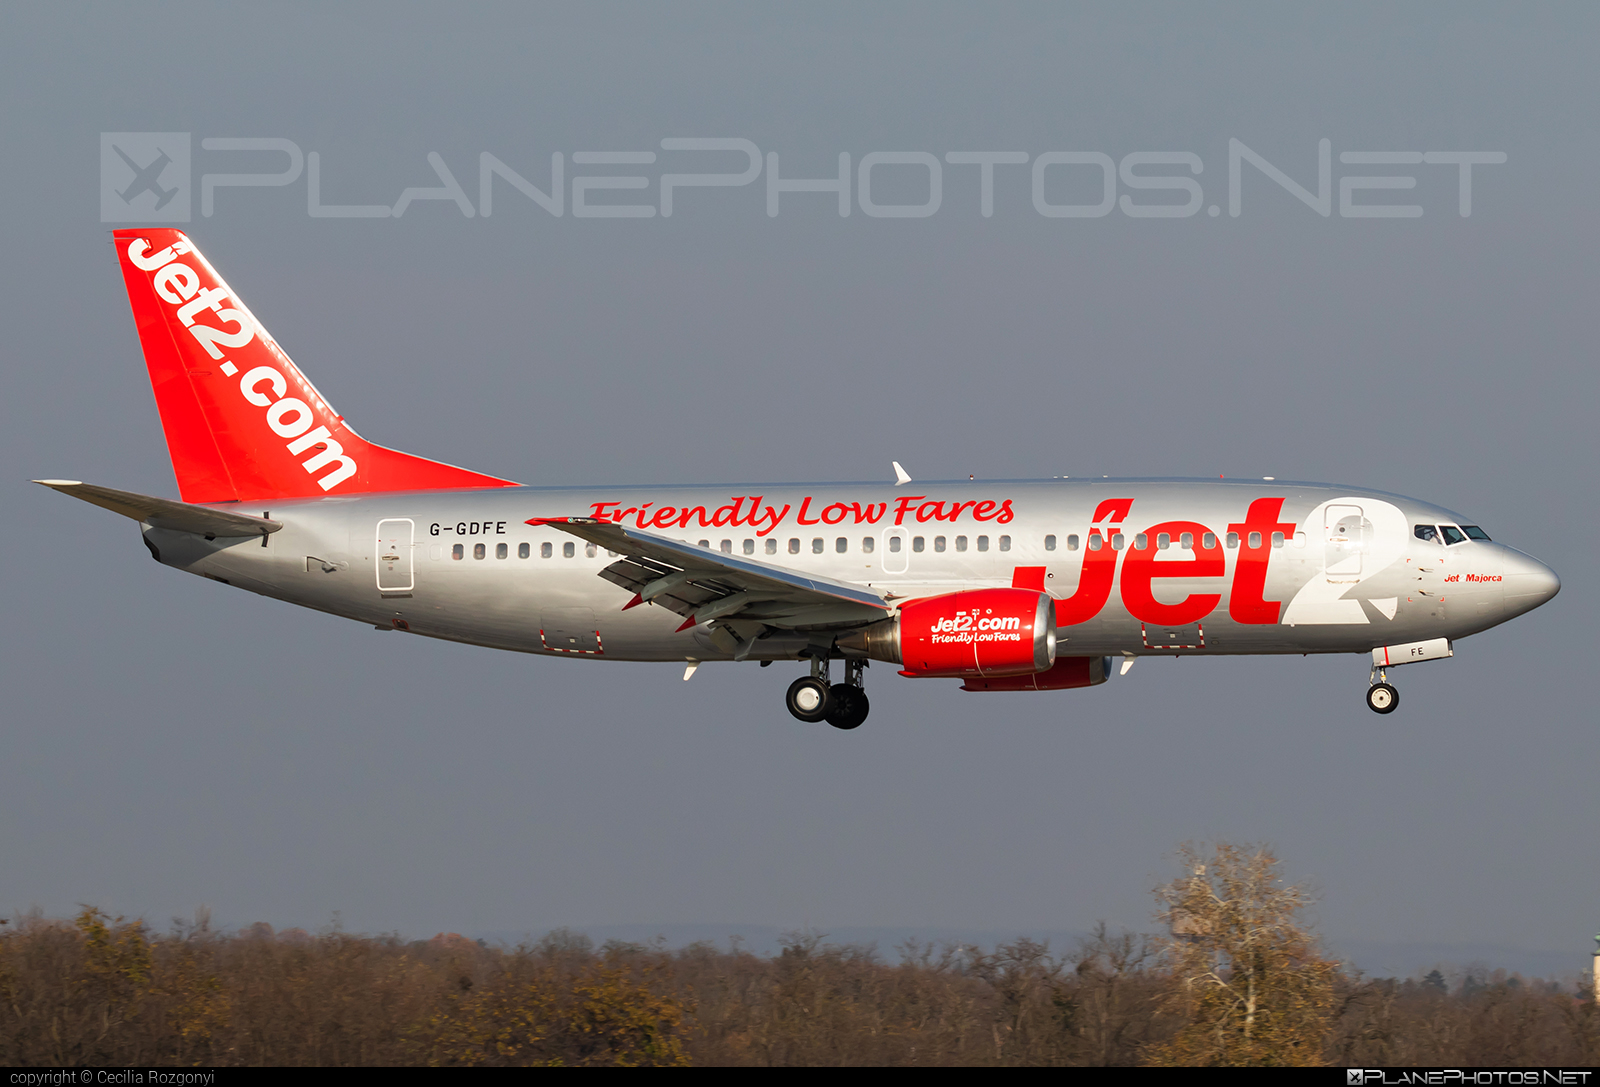 Boeing 737-300 - G-GDFE operated by Jet2 #b737 #boeing #boeing737 #jet2